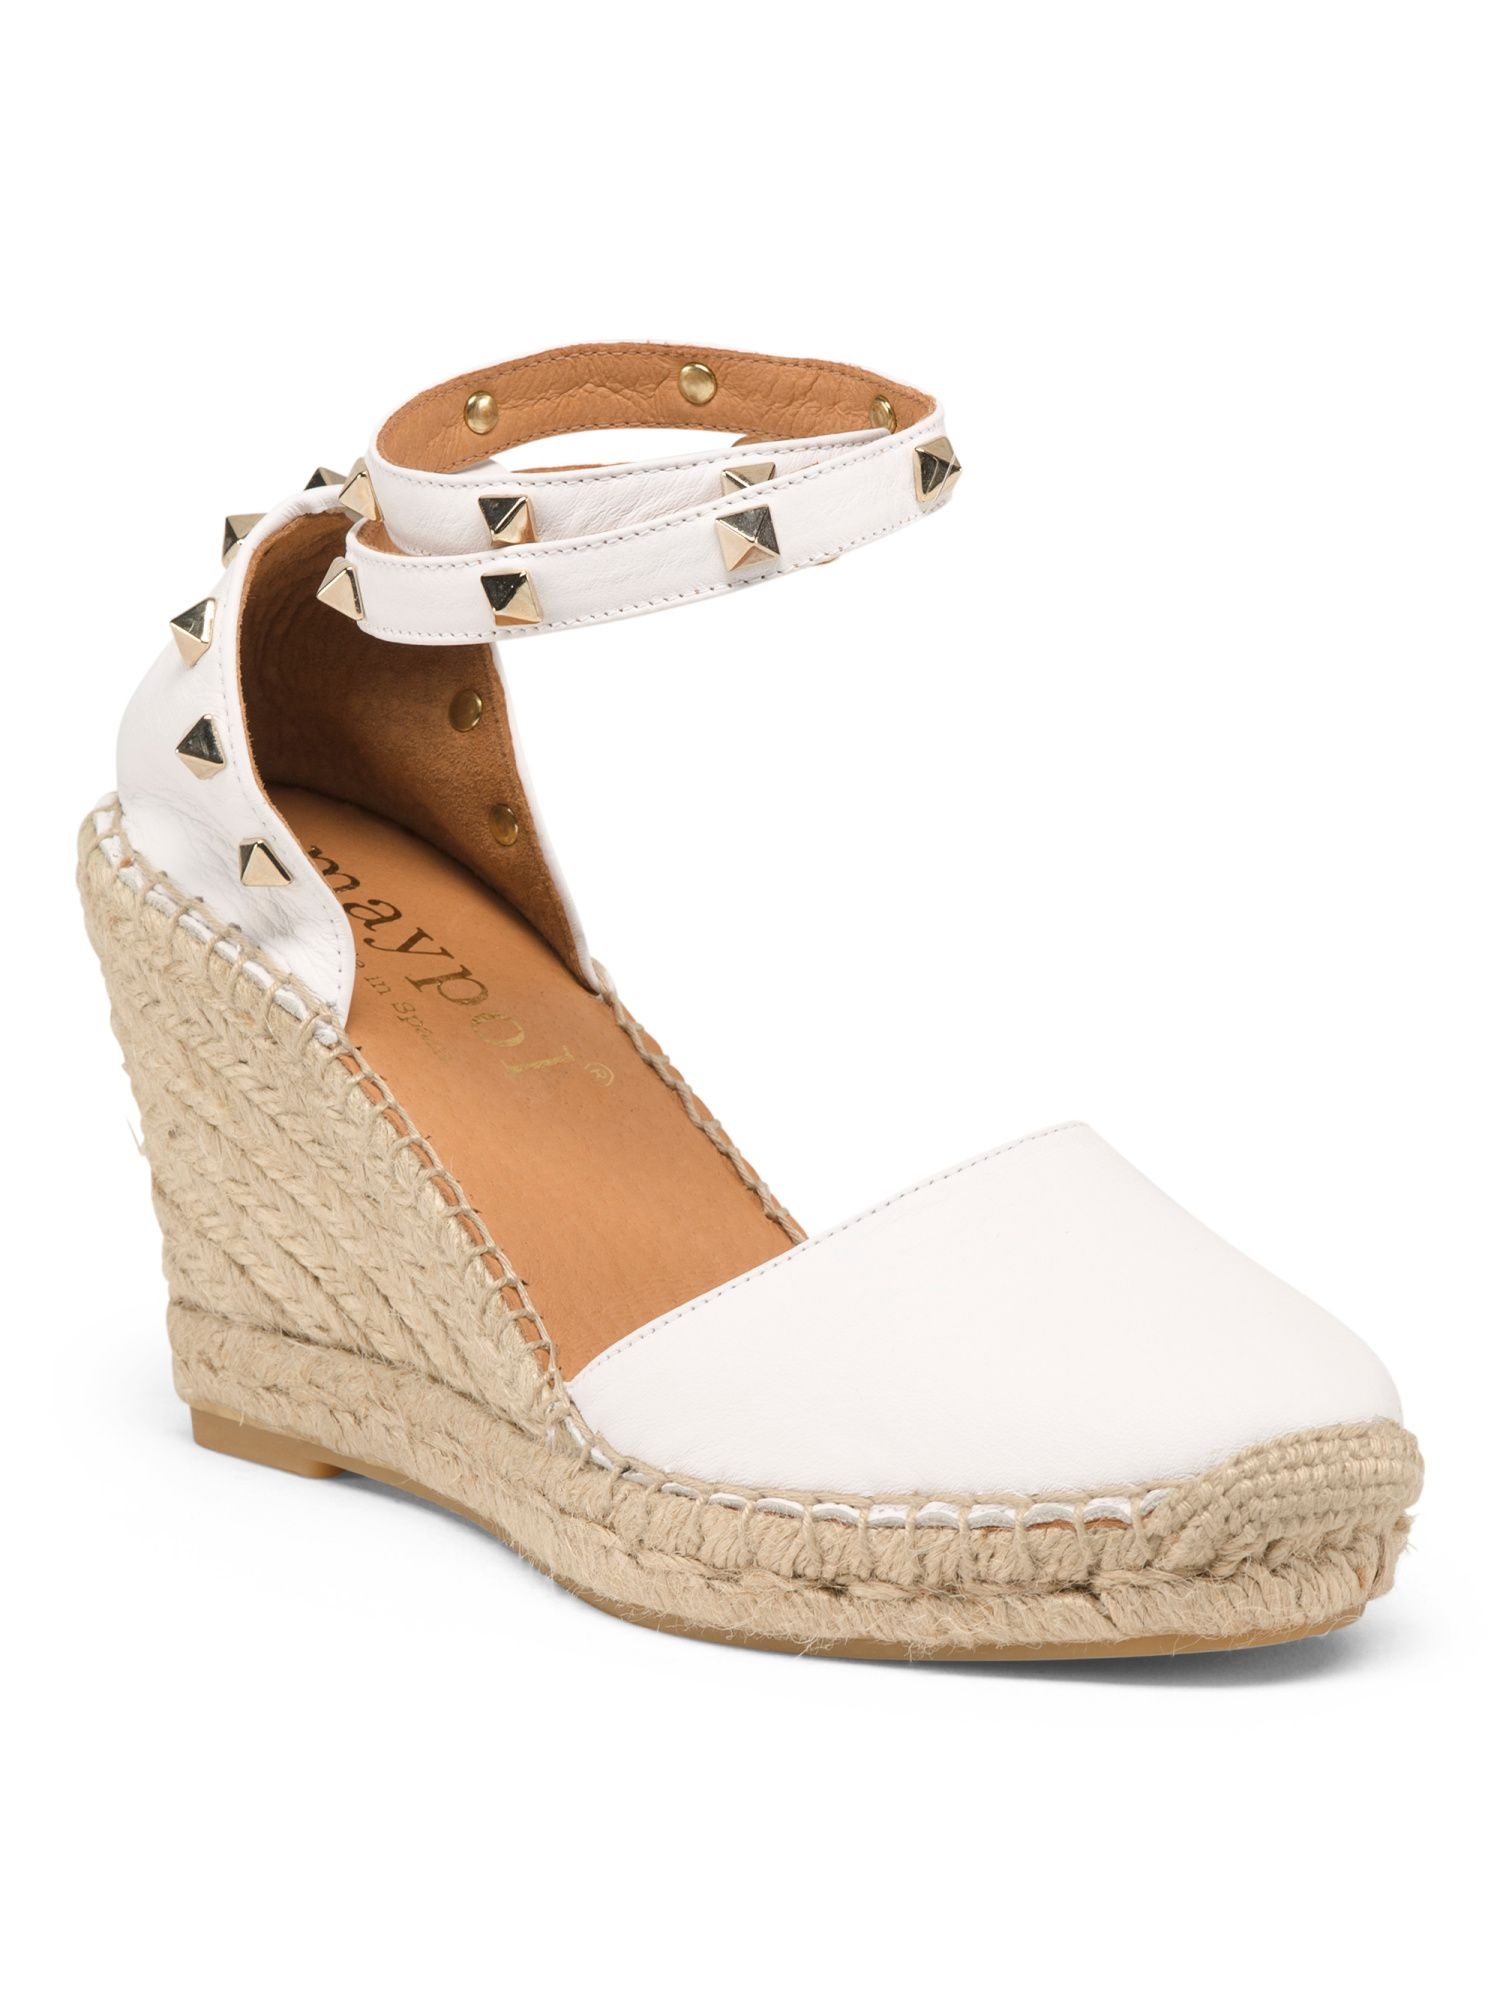 Espadrille Nude Leather Lace Up Espadrilles - Low Wedge